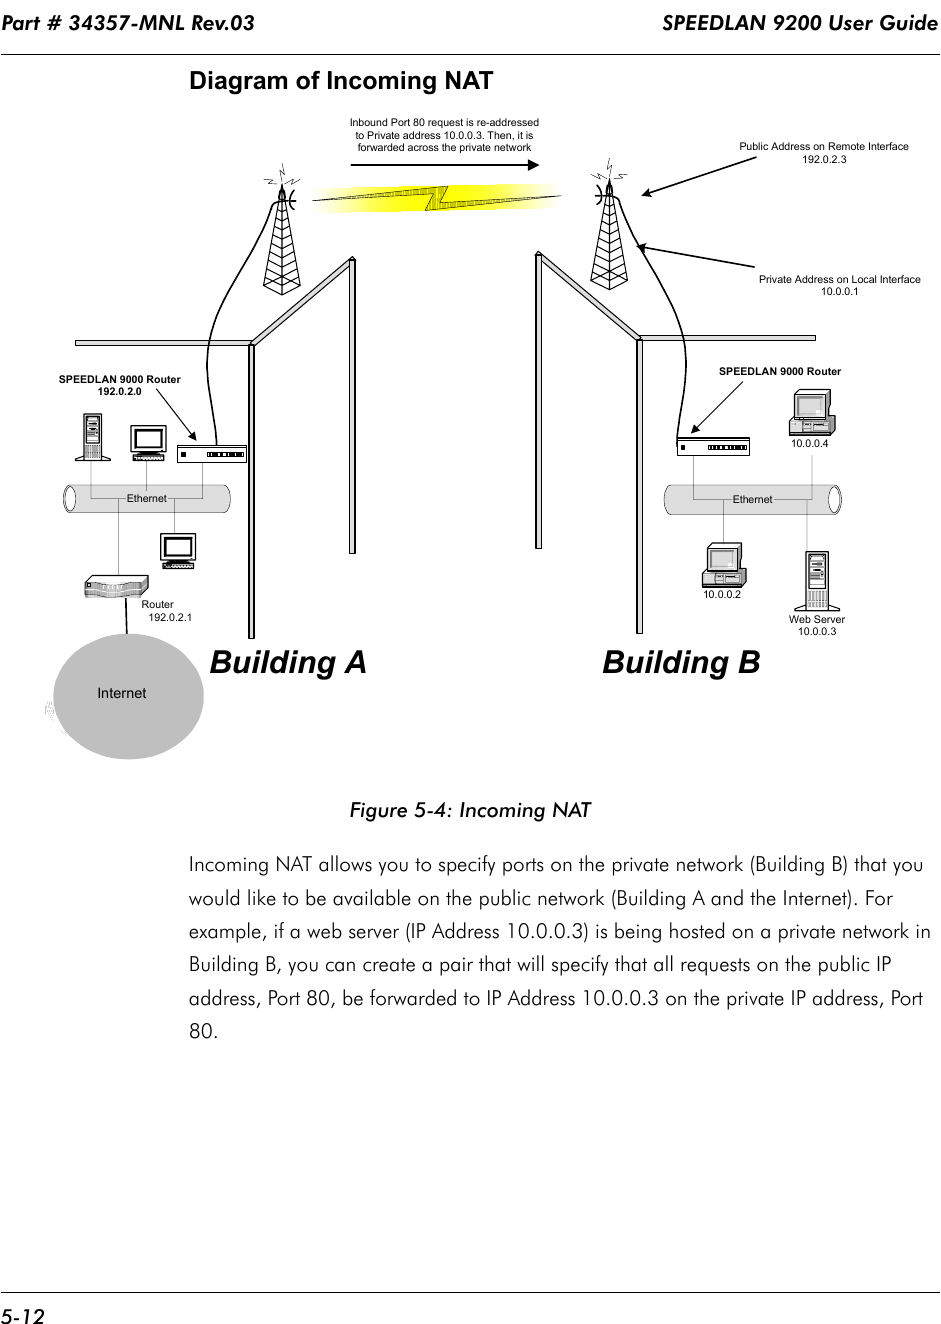 Part # 34357-MNL Rev.03                                                                  SPEEDLAN 9200 User Guide 5-12Diagram of Incoming NATFigure 5-4: Incoming NATIncoming NAT allows you to specify ports on the private network (Building B) that you would like to be available on the public network (Building A and the Internet). For example, if a web server (IP Address 10.0.0.3) is being hosted on a private network in Building B, you can create a pair that will specify that all requests on the public IP address, Port 80, be forwarded to IP Address 10.0.0.3 on the private IP address, Port 80.Inbound Port 80 request is re-addressedto Private address 10.0.0.3. Then, it isforwarded across the private networkInternetEthernet                               Router                                        192.0.2.1Private Address on Local Interface10.0.0.110.0.0.210.0.0.4EthernetWeb Server10.0.0.3Public Address on Remote Interface192.0.2.3Building A Building BSPEEDLAN 9000 Router192.0.2.0SPEEDLAN 9000 RouterInternet